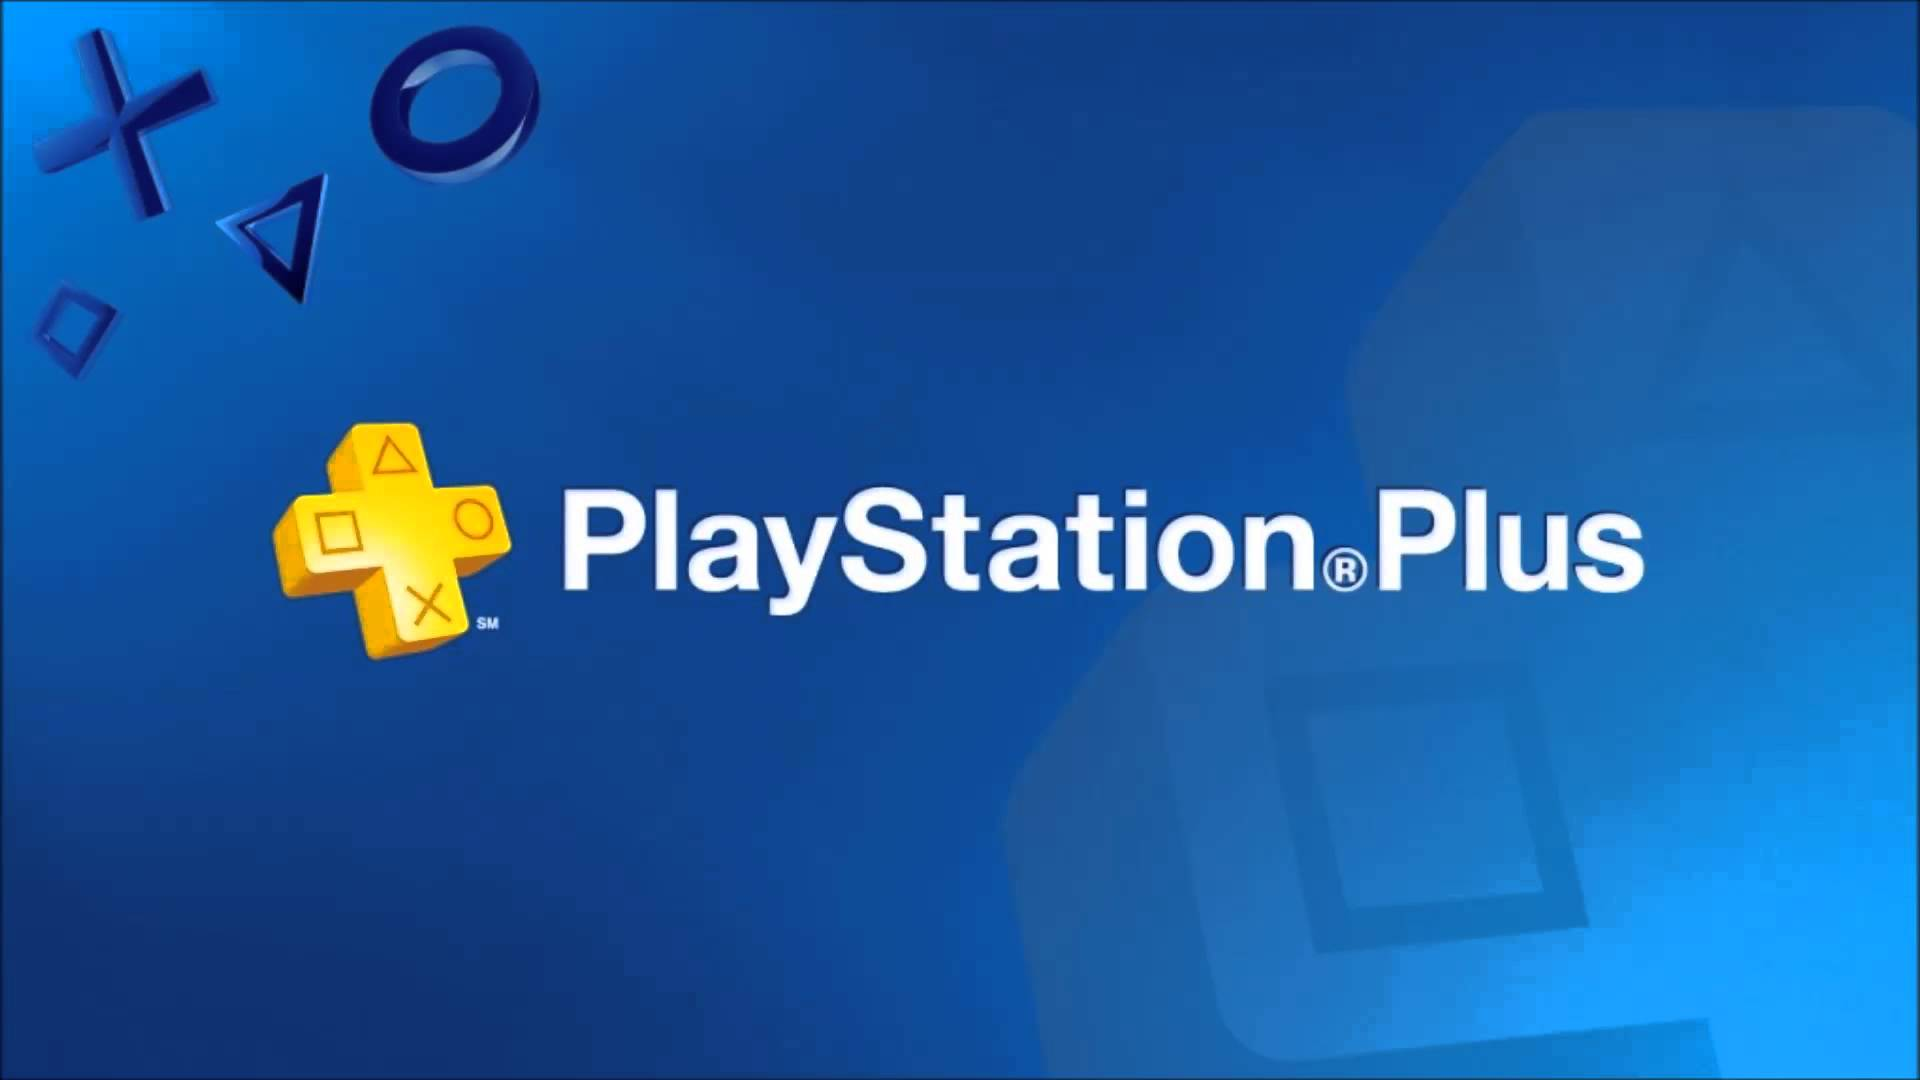 Sony's darkest PlayStation secret is out to ruin your Christmas this year